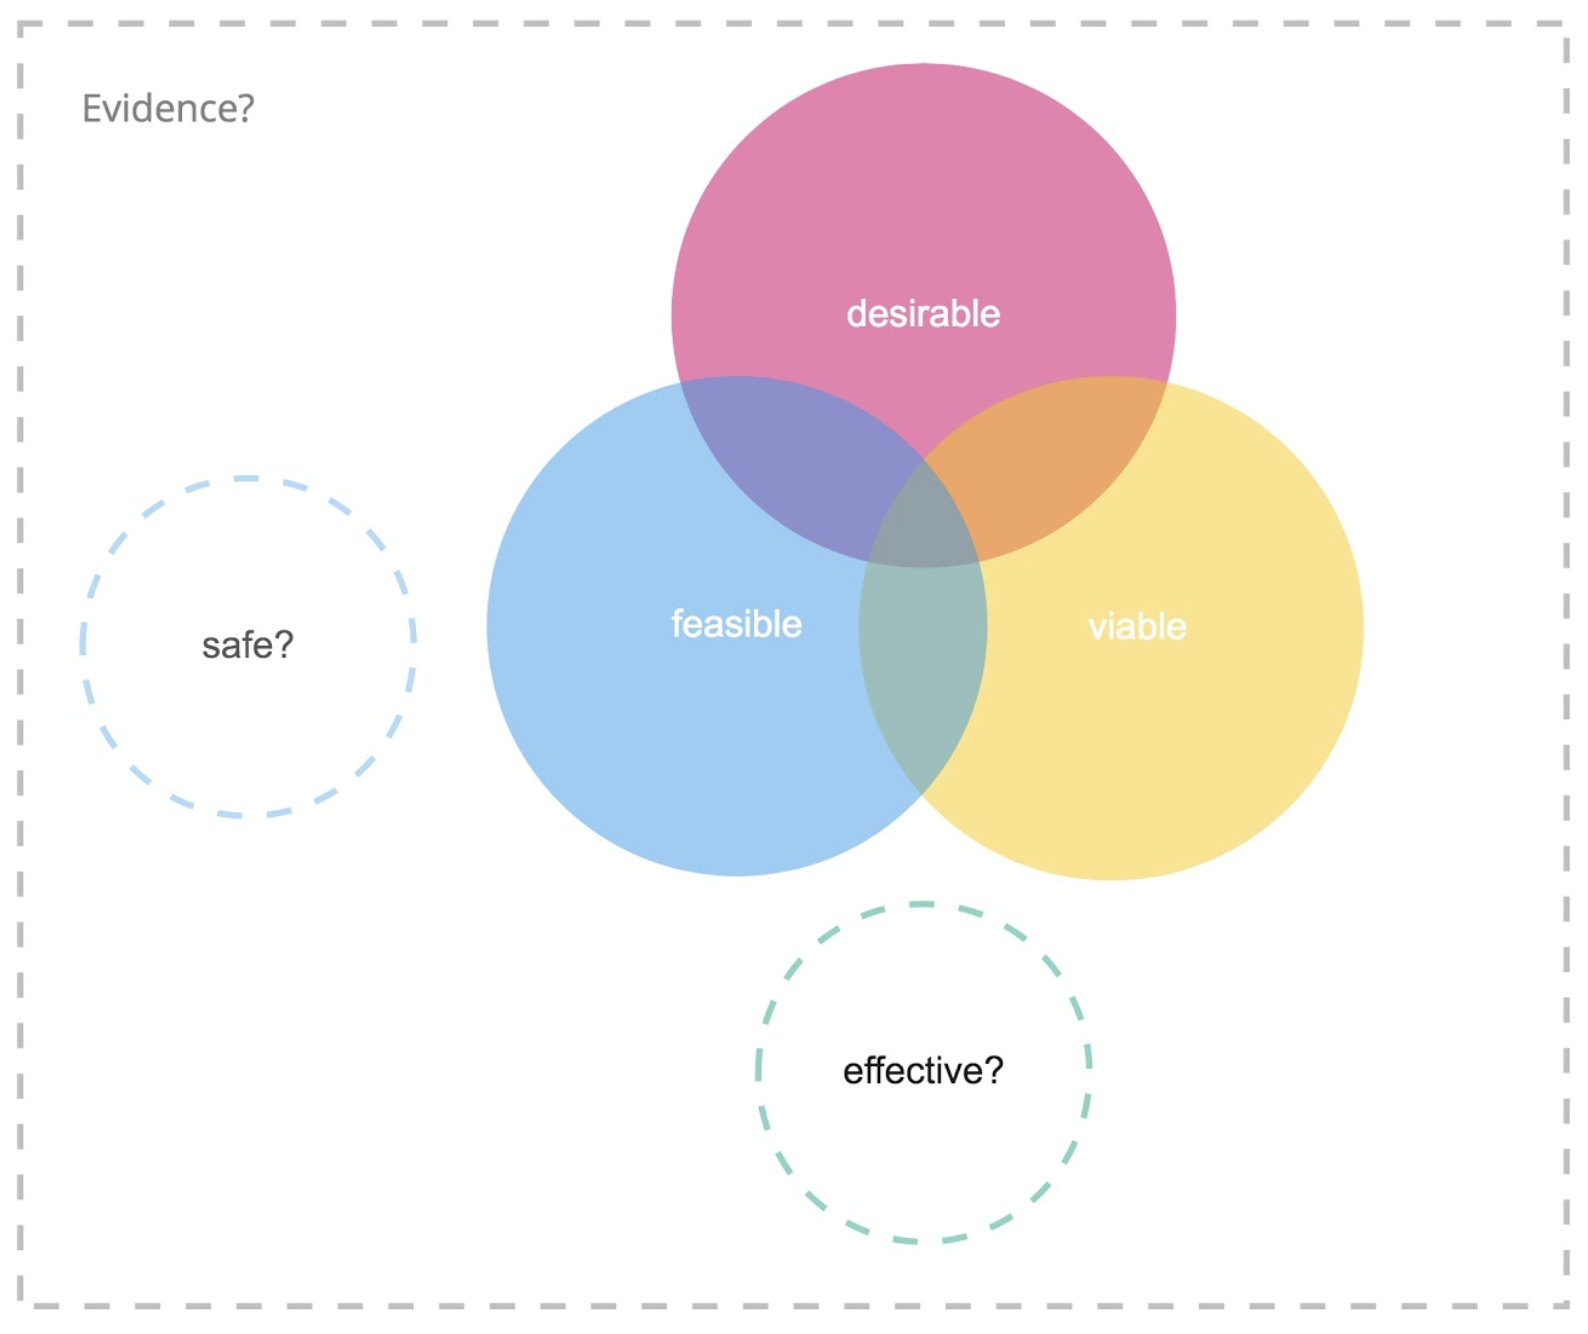 """Venn diagram with viable, feasible, and desirable connected and """"effective?"""", """"evidence?"""", and """"safe?"""" as outlying elements."""